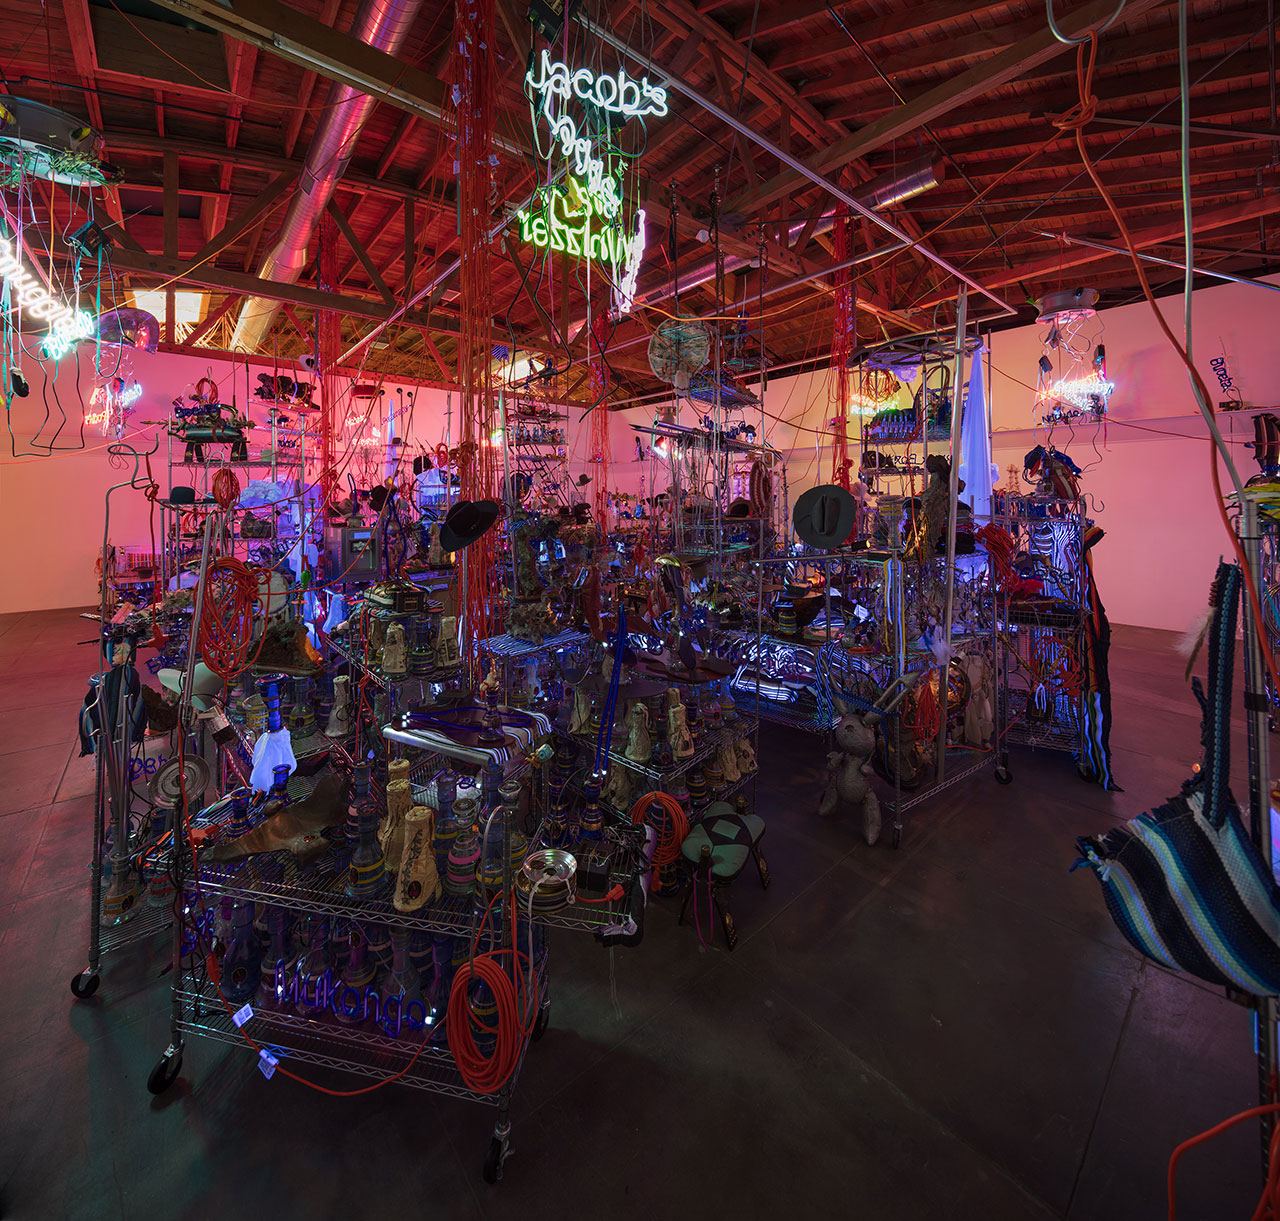 Jason Rhoades, The Black Pussy... and the Pagan Idol Workshop, 2005. Mixed media. Dimensions variable. Installation view, 'Jason Rhoades. Installations, 1994 – 2006'. Hauser & Wirth Los Angeles, 2017 © The Estate of Jason Rhoades. Courtesy the estate, Hauser & Wirth, David Zwirner and lender. Photo by Fredrik Nilsen.